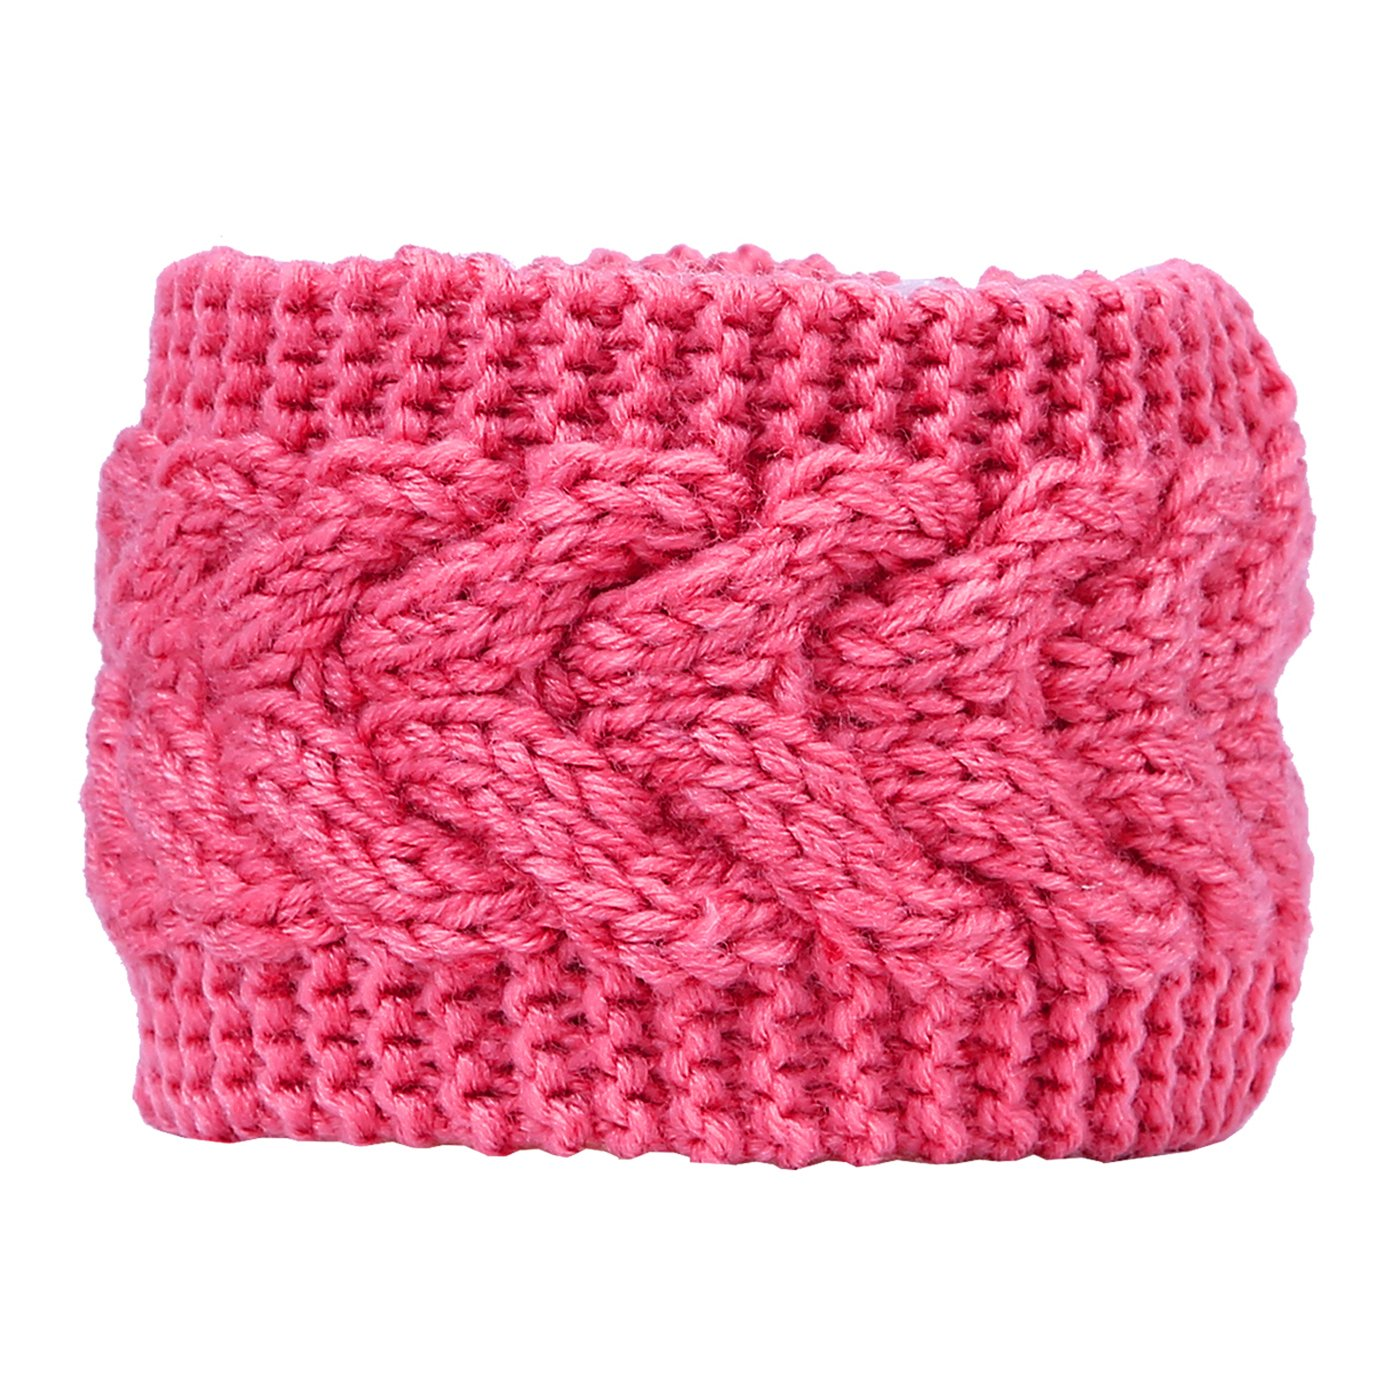 HDE Women's Knit Headband Braided Crochet Cable Knit Ear Warmer Winter Hairband HDE-X337-2014